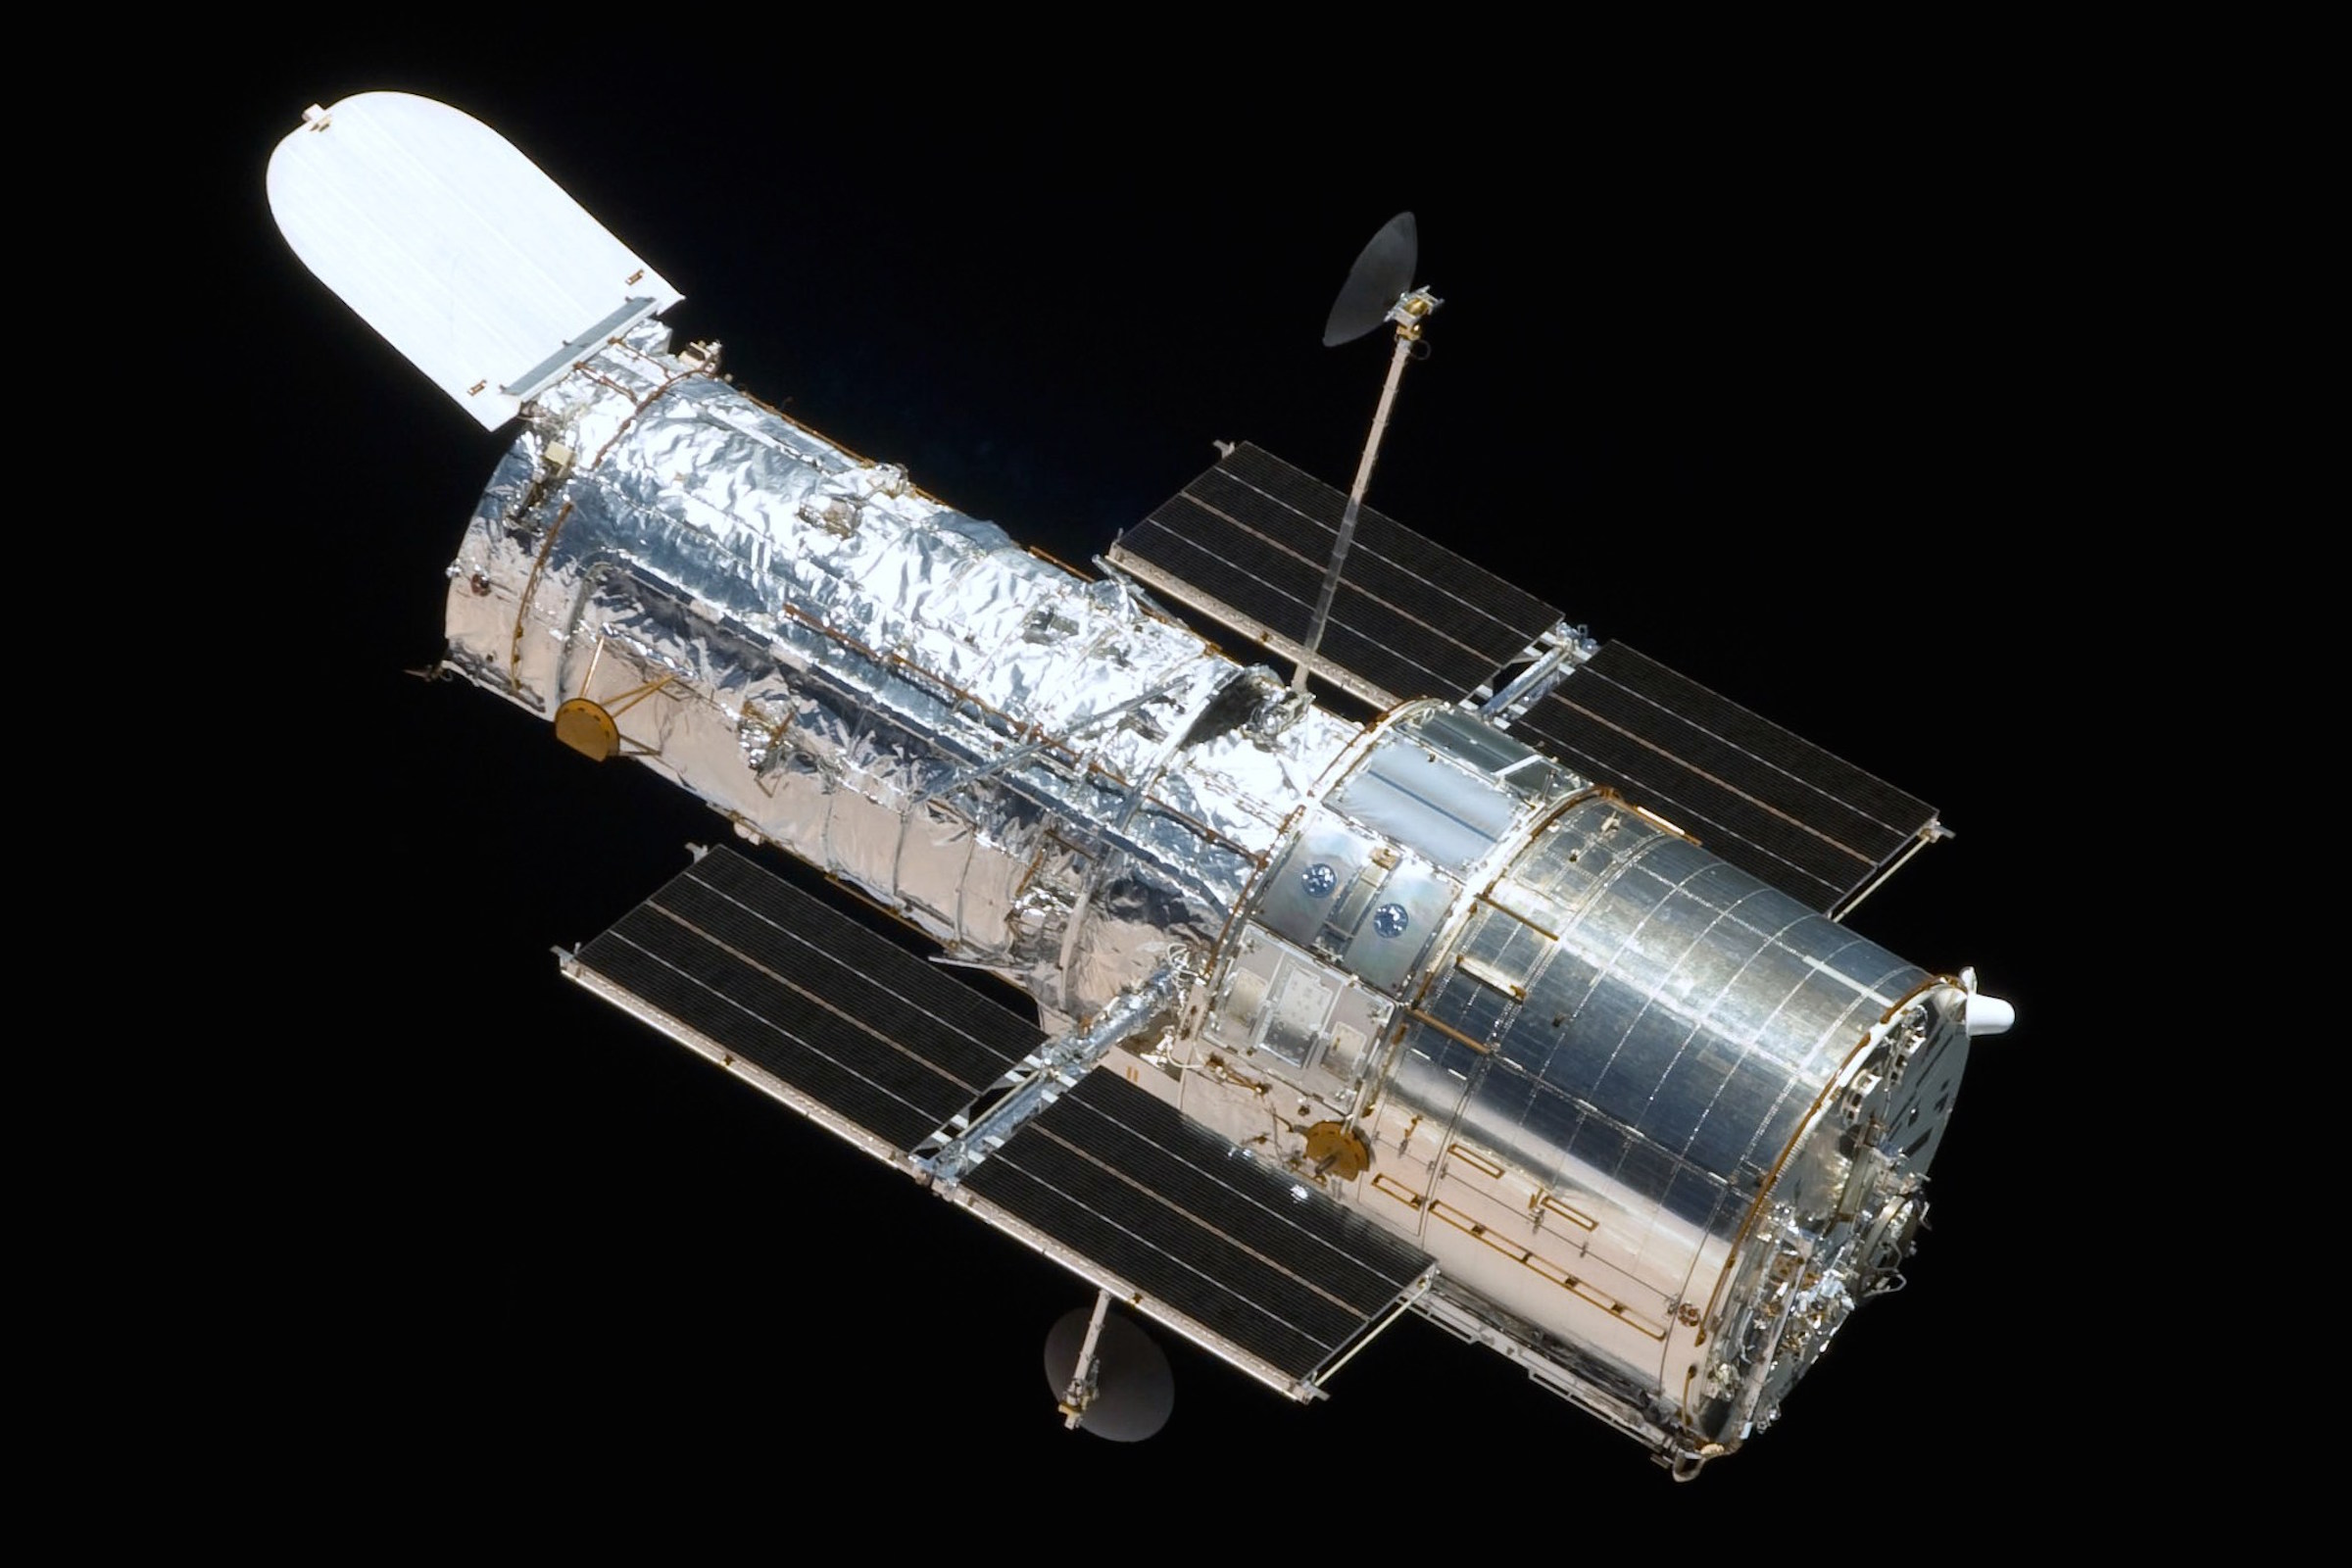 American Aerospace Controls Celebrates Hubble's 25 Years